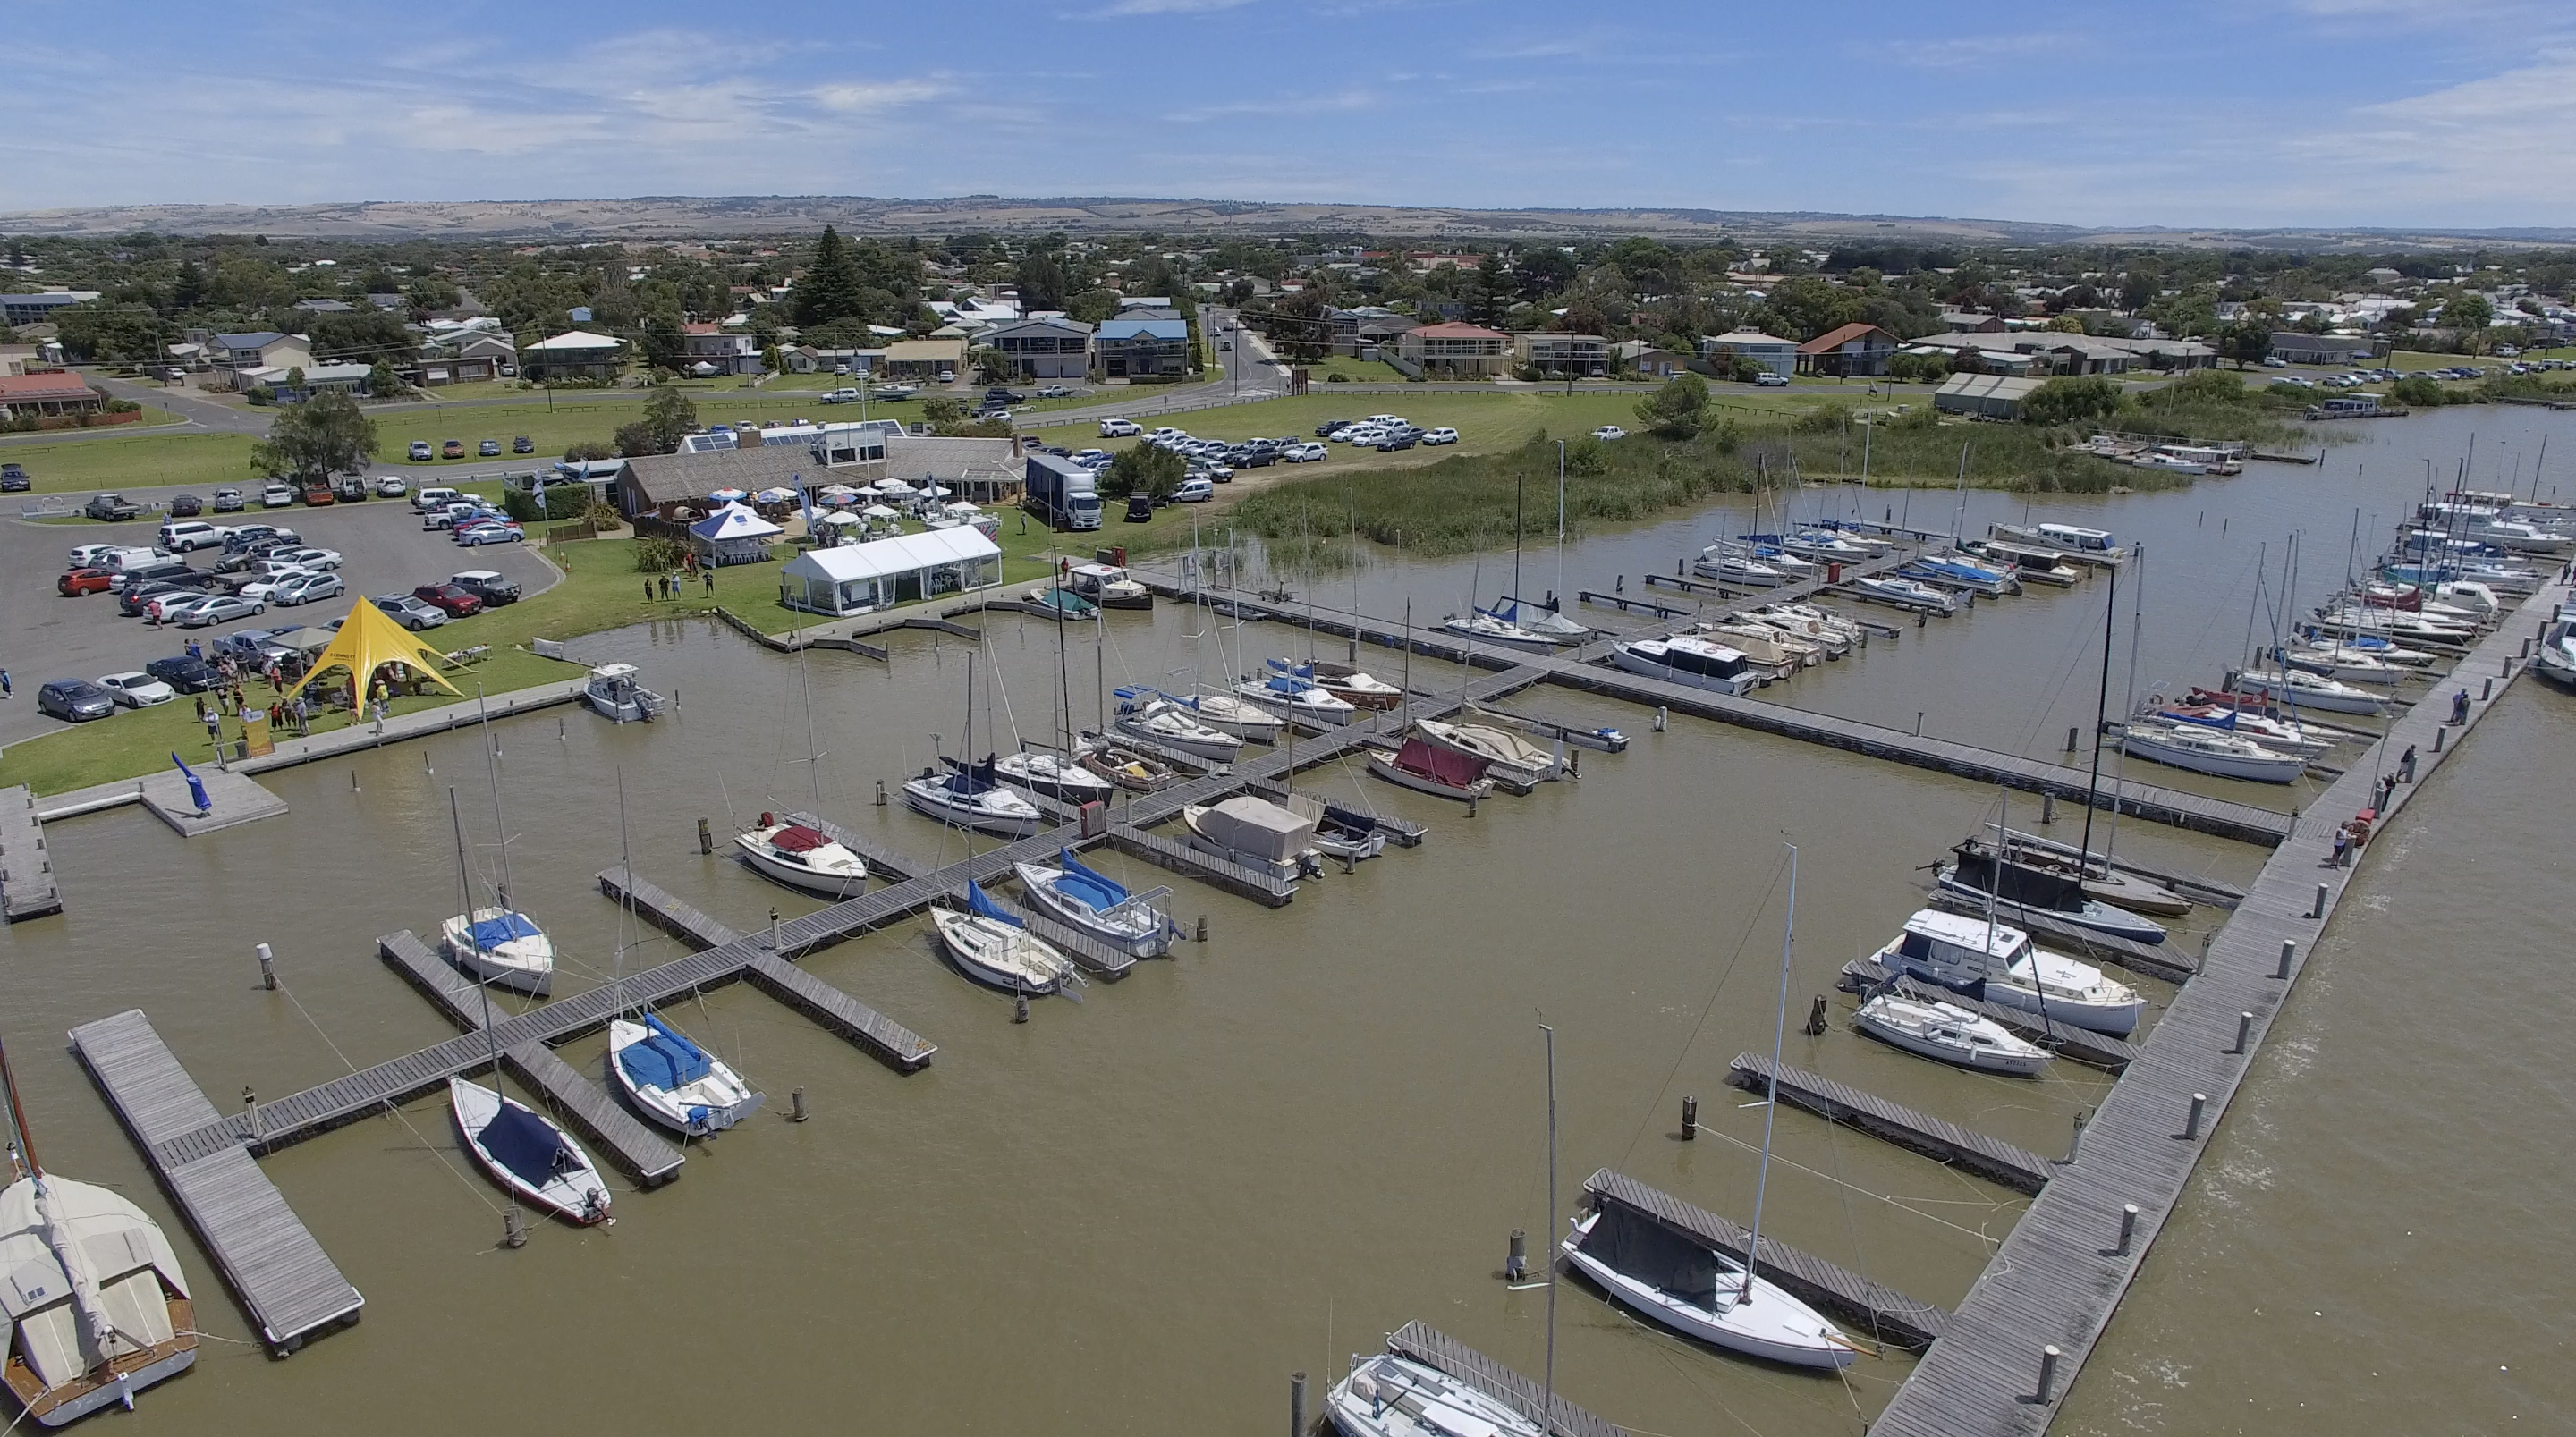 From friendly wager to iconic regatta week – Goolwa's rich sailing history